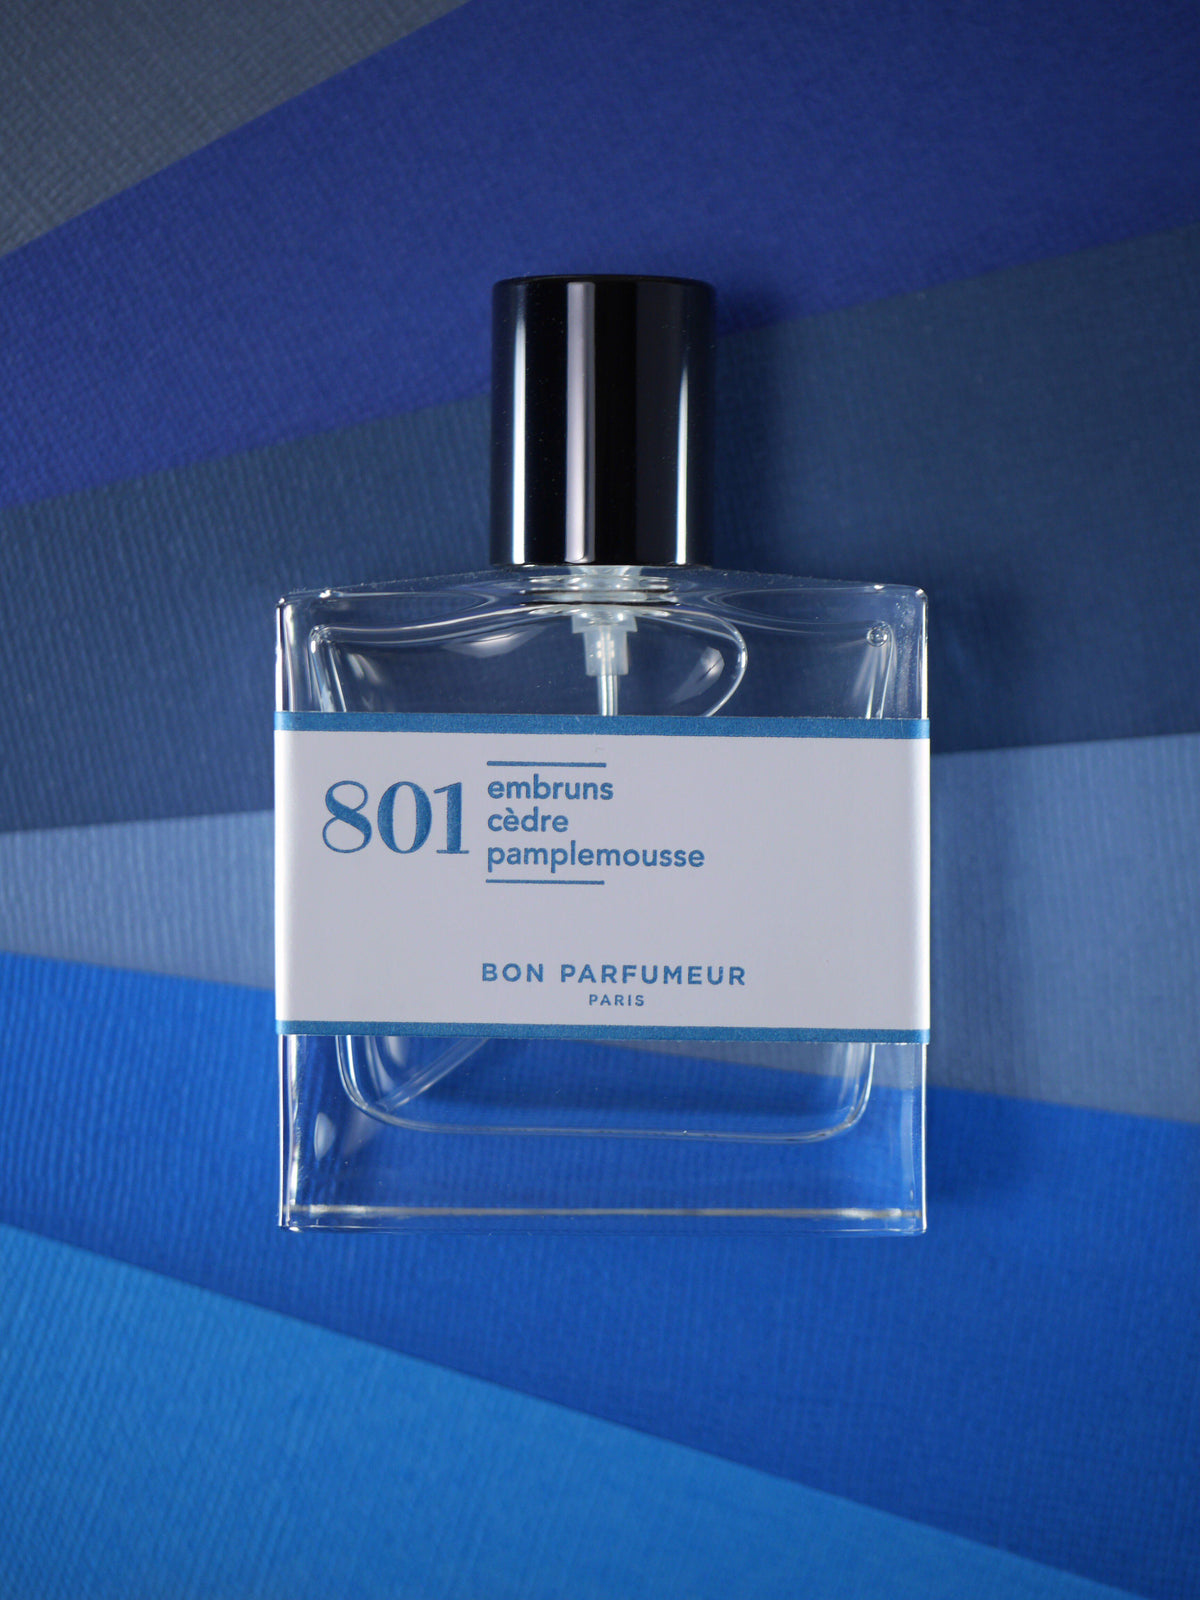 801: Sea Spray | Cedar | Grapefruit Fragrance Bon Parfumeur - der ZEITGEIST